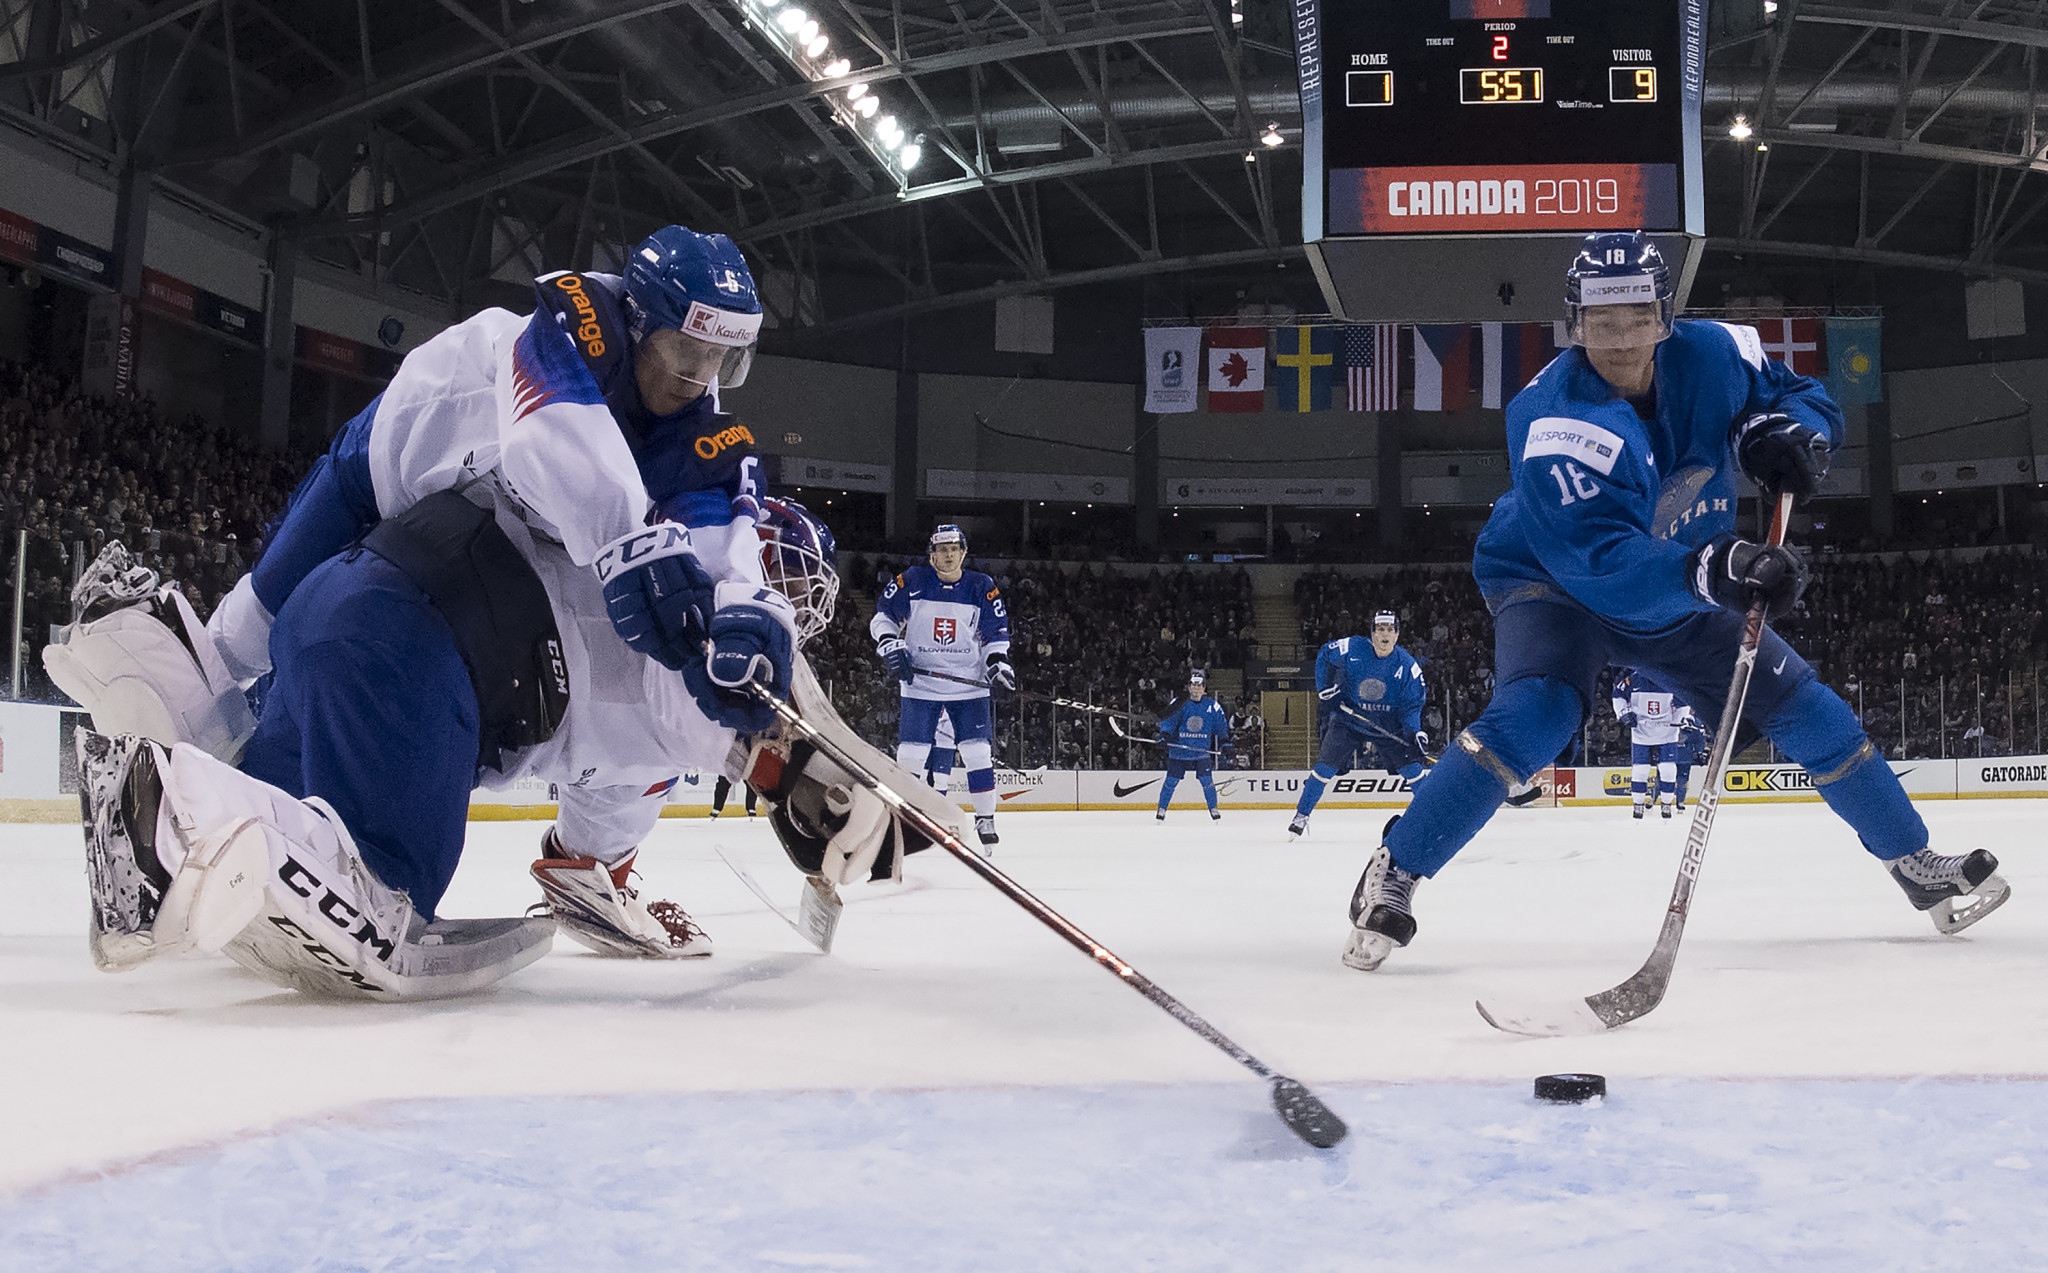 Slovakia defeated Kazakhstan to progress to the quarter-finals of the IIHF World Junior Championships in Canada ©Getty Images